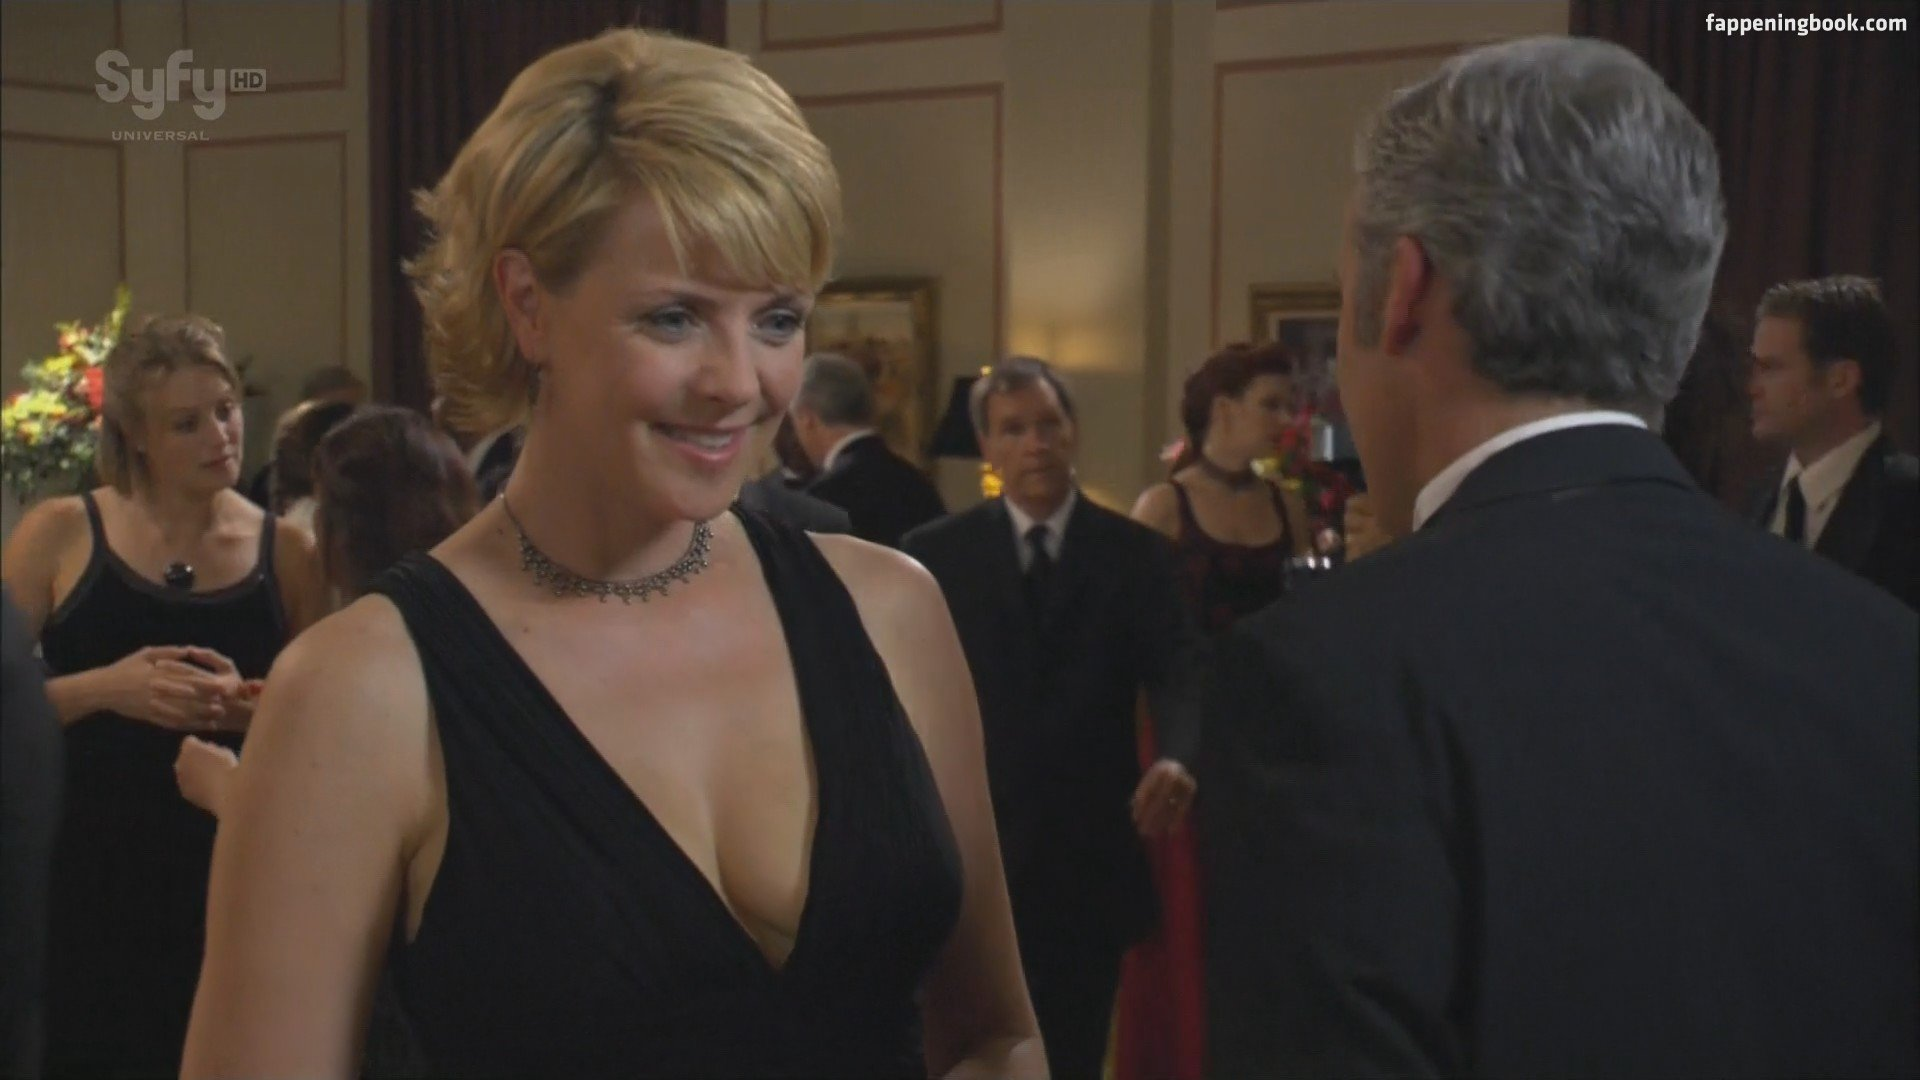 Amanda Tapping Naked amanda tapping nude, sexy, the fappening, uncensored - photo